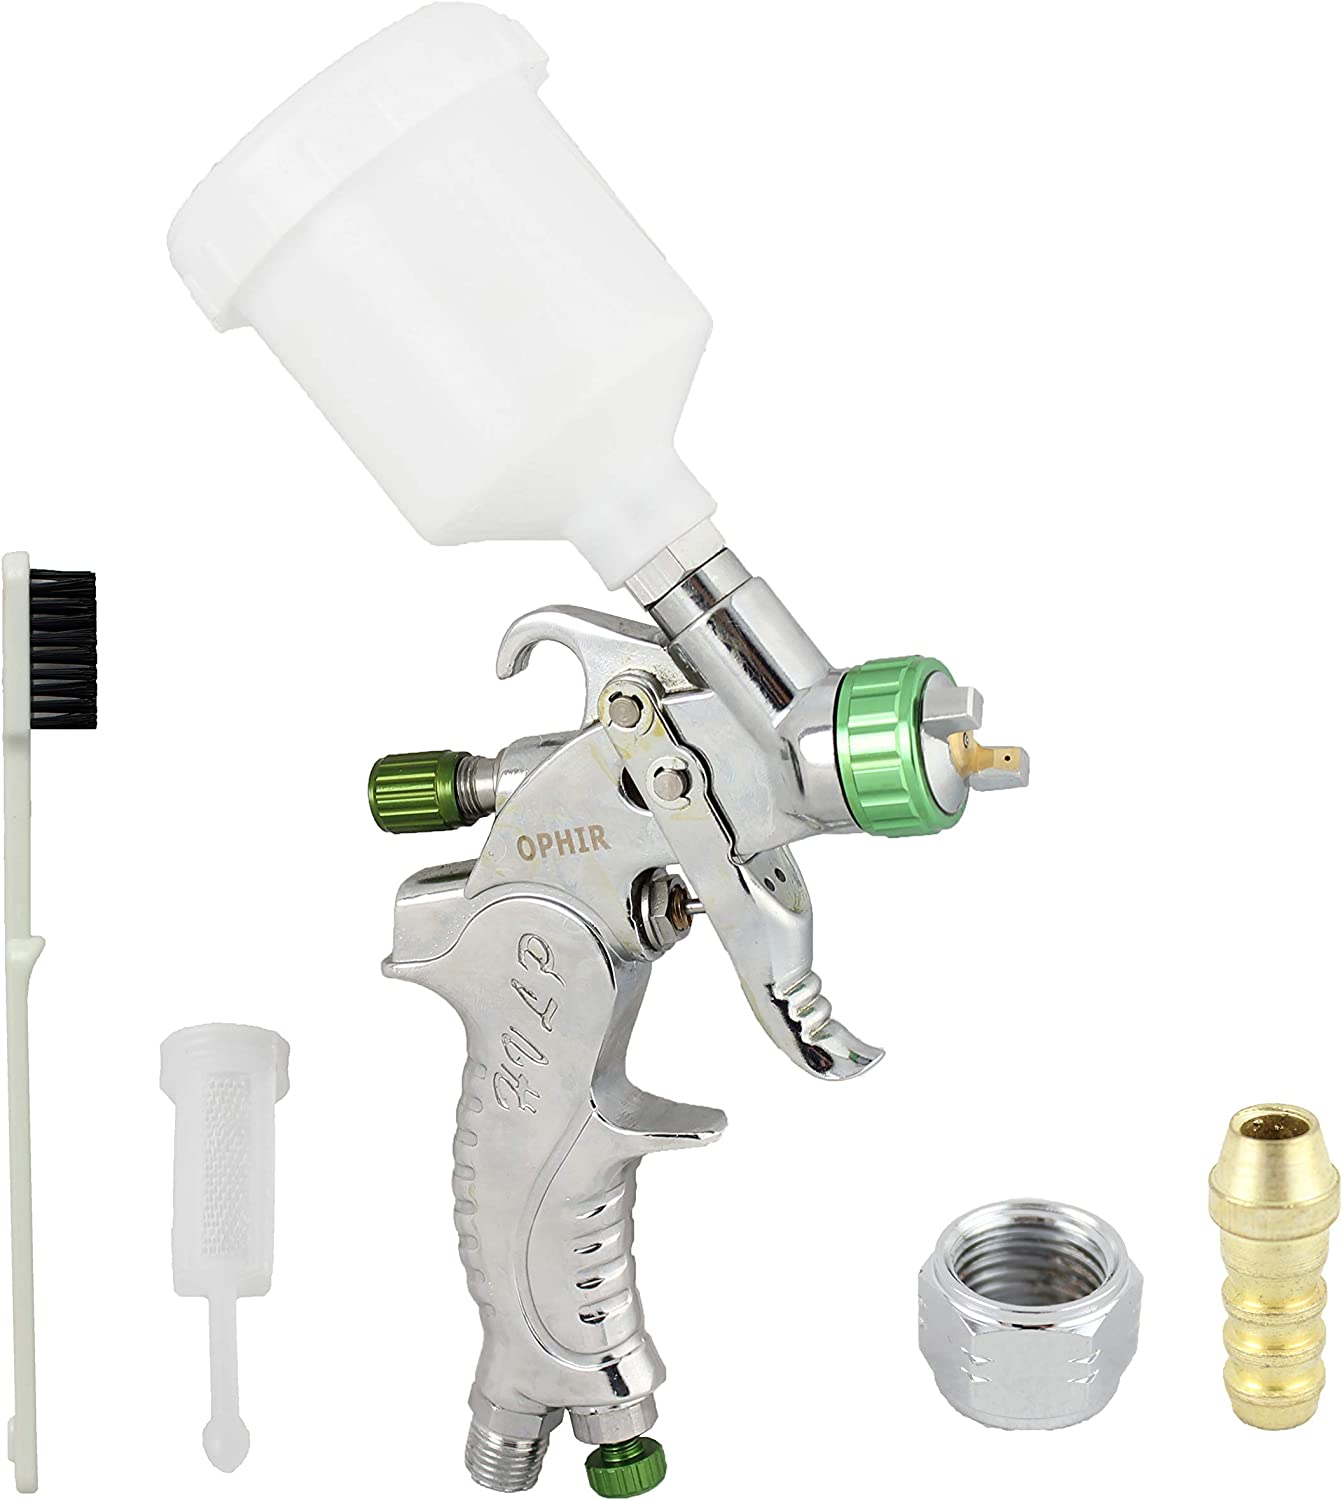 OPHIR Mini Detail Touch Up HVLP Spray Gun 1.0mm Tip Basecoat Auto Paint Sprayer with Plastic Cup